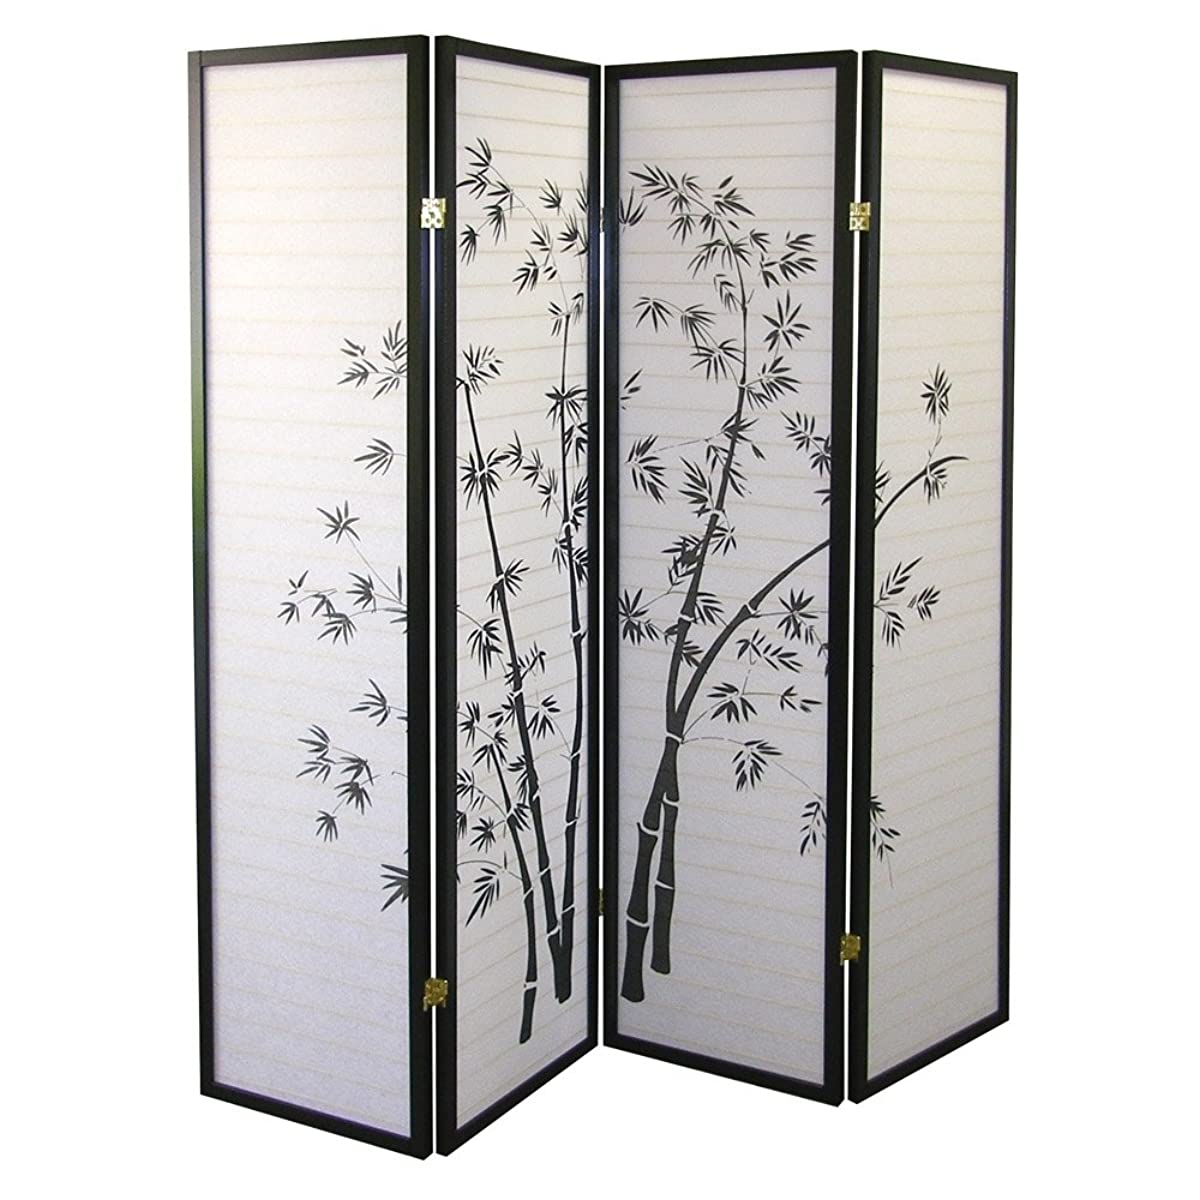 ORE International Black 4 Panel Bamboo Screen Room Divider